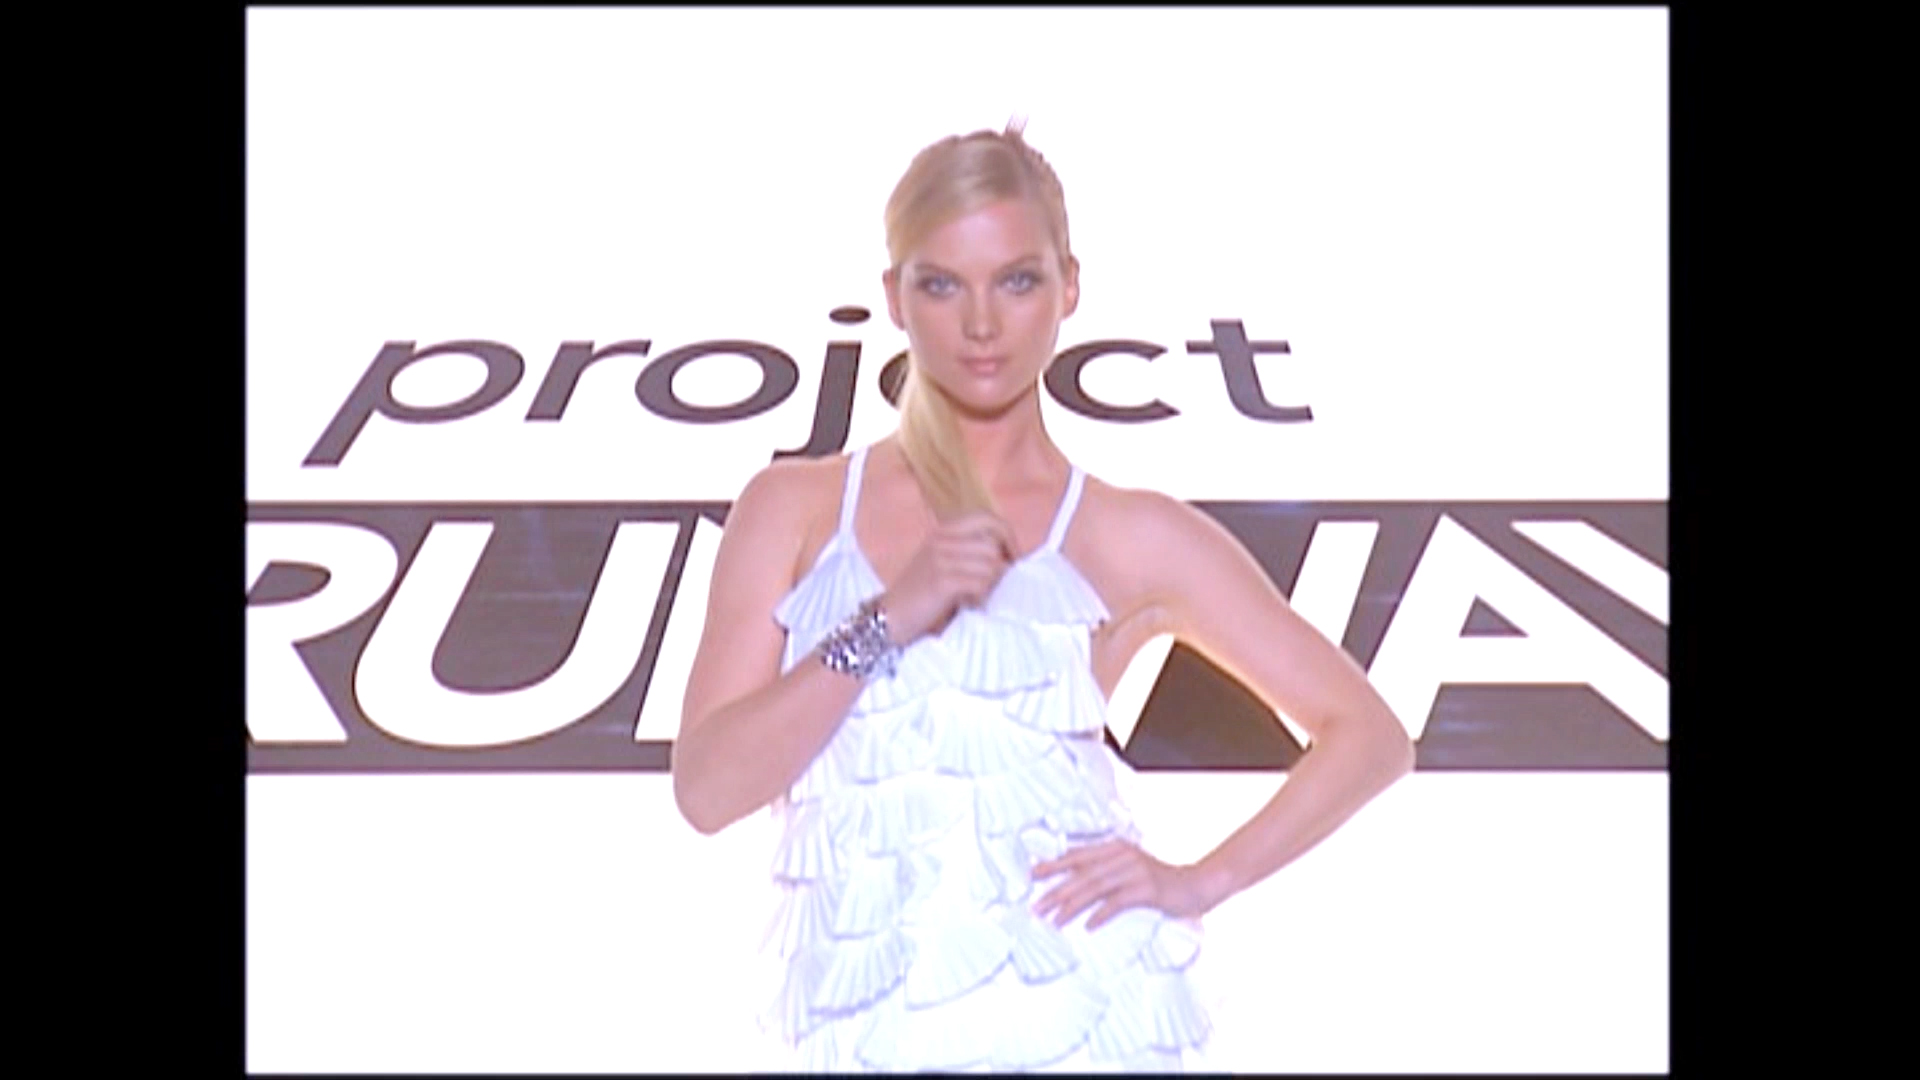 The 10 Most Iconic Designs from Bravo's Project Runway